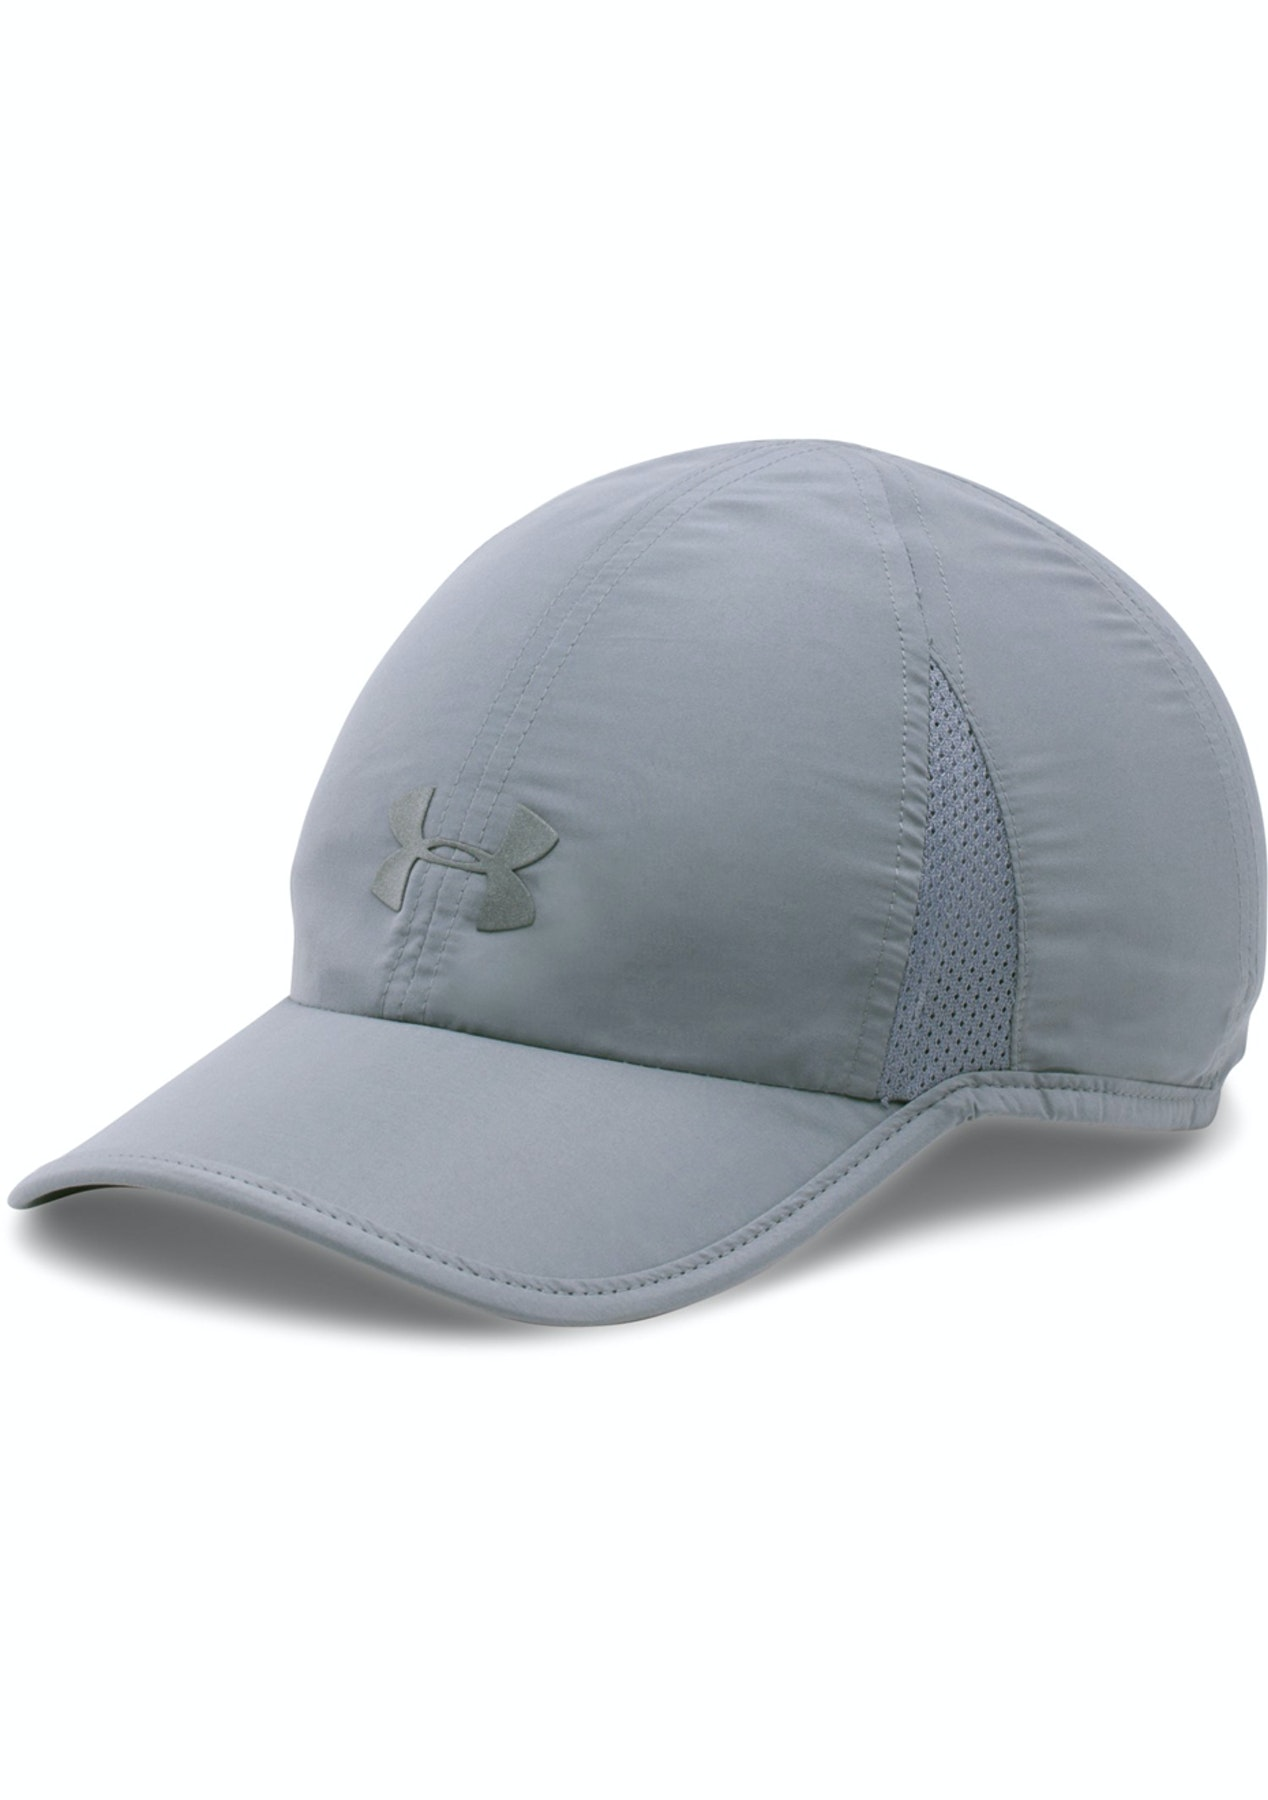 8dfb9369f5d Under Armour - 1295154 Womens Shadow Cap 2.0 - Steel - Under Armour from   8.95 - Onceit